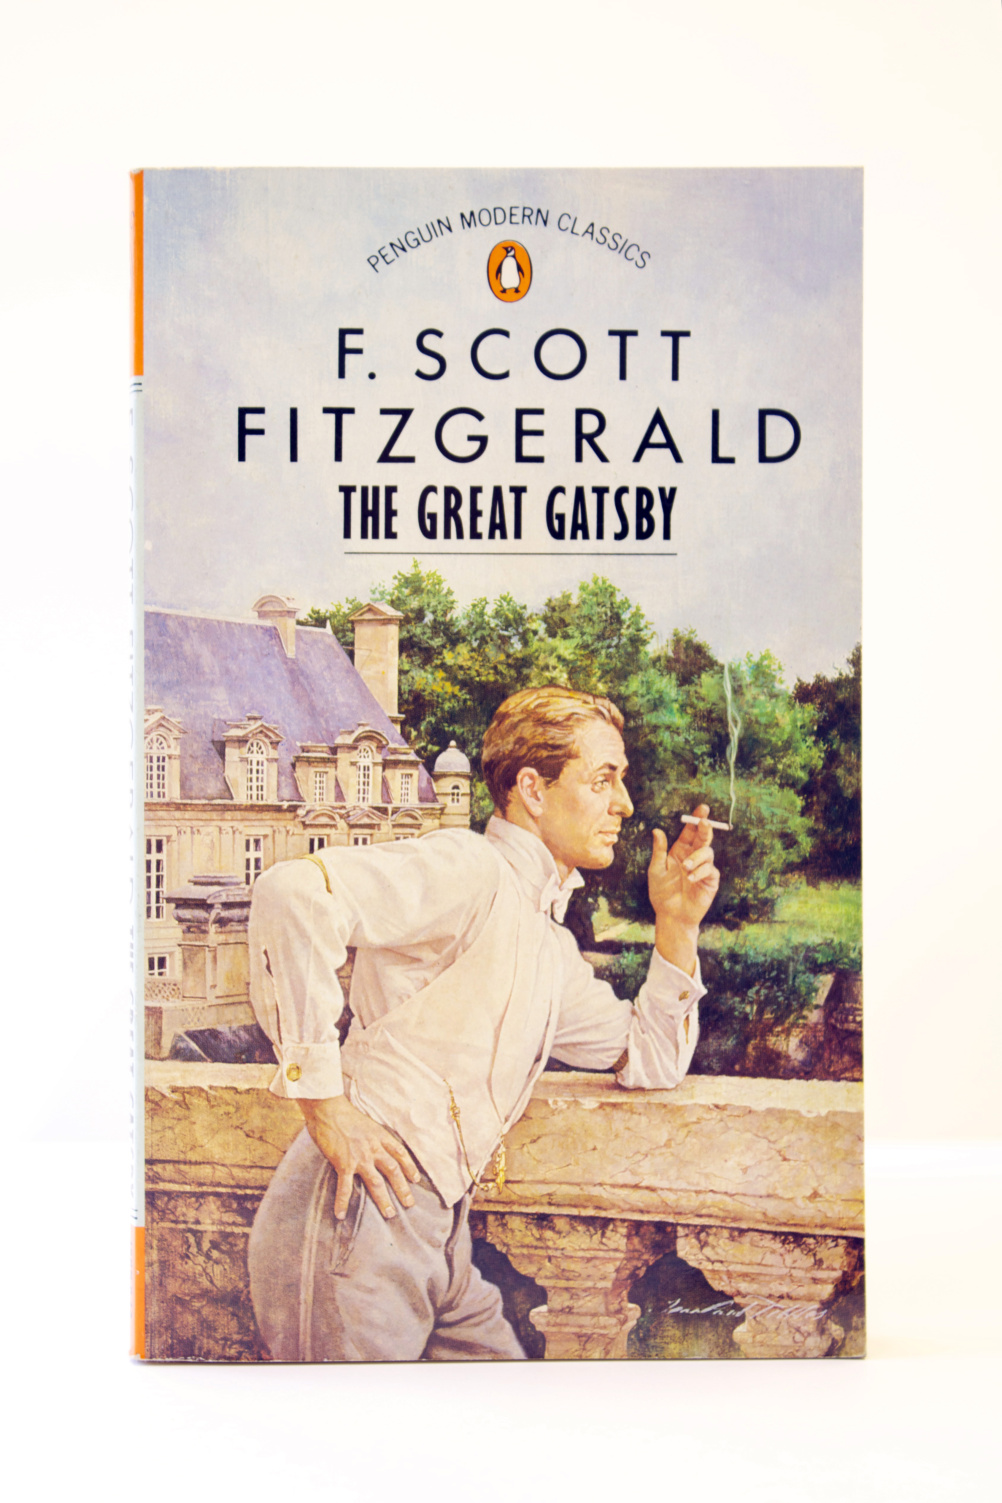 f scott fitsgerald relates to the great gatsby The dominant influences on f scott fitzgerald were aspiration, literature  the great gatsby marked a striking advance in fitzgerald's technique.